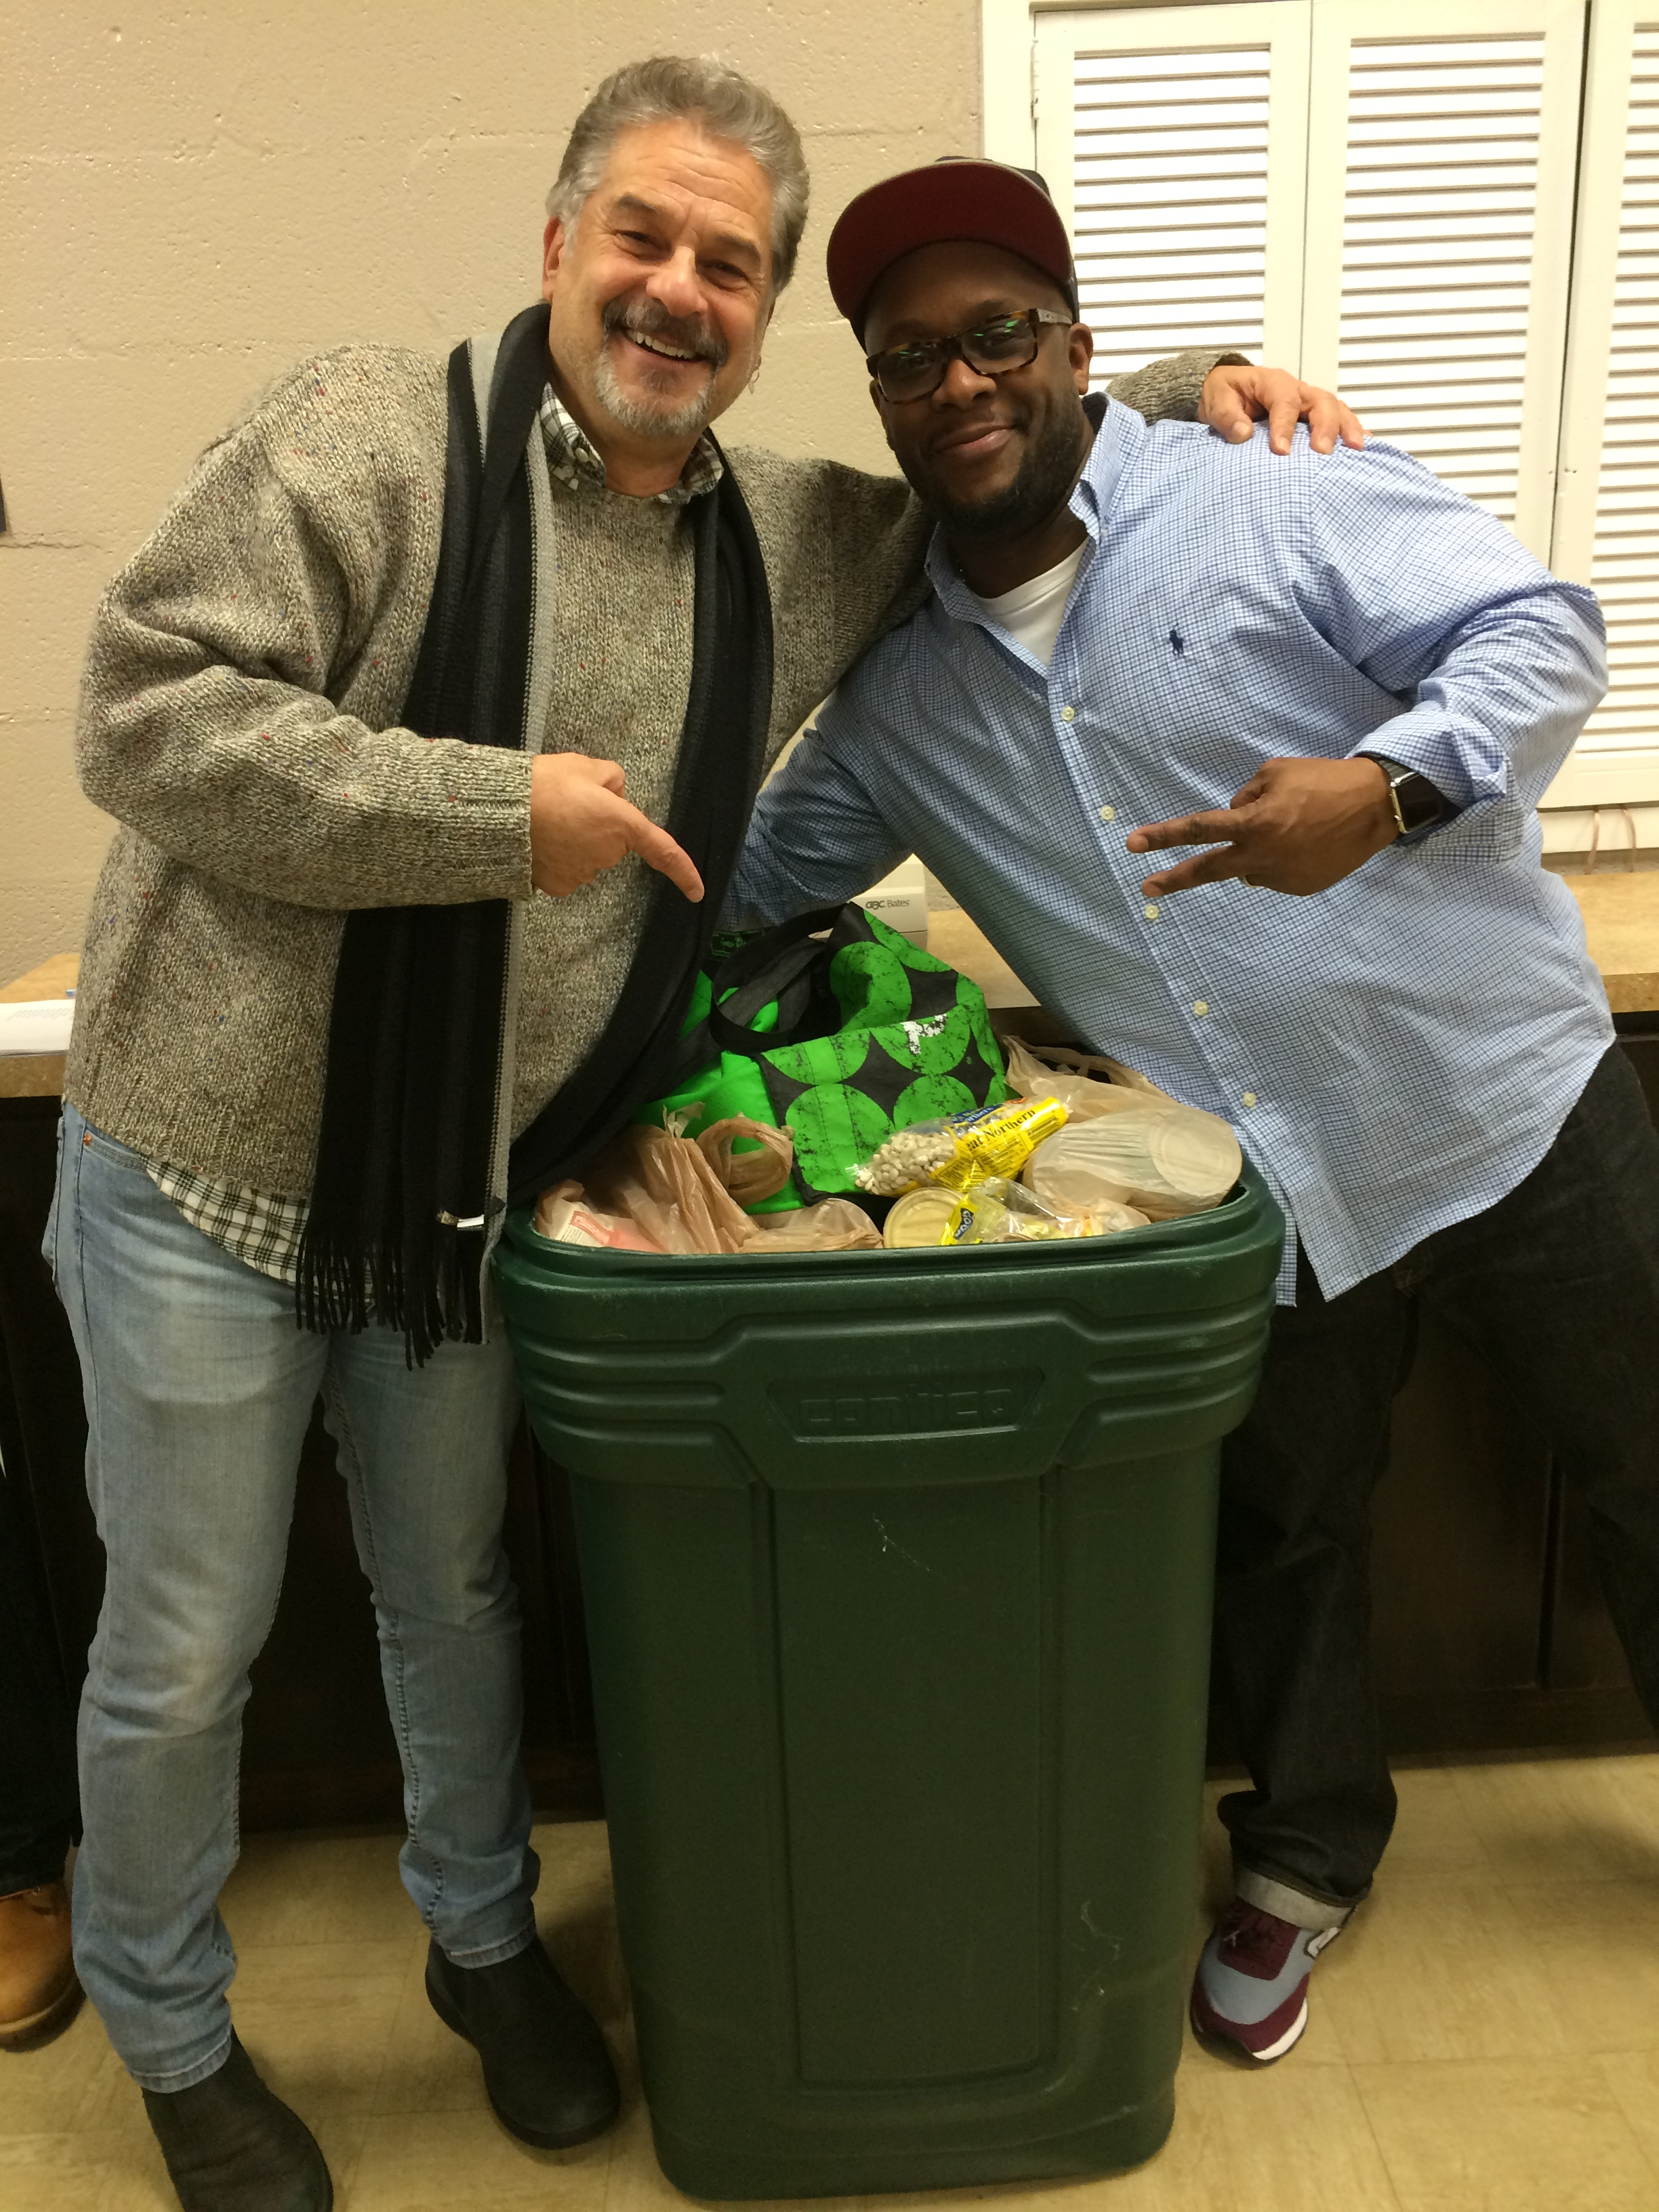 Conservatory Committee Chair Clayton Landey and Casting Director George Pierre gesture at a basketful of food donations for the Buckhead Chrtistian Ministry Food Pantry.